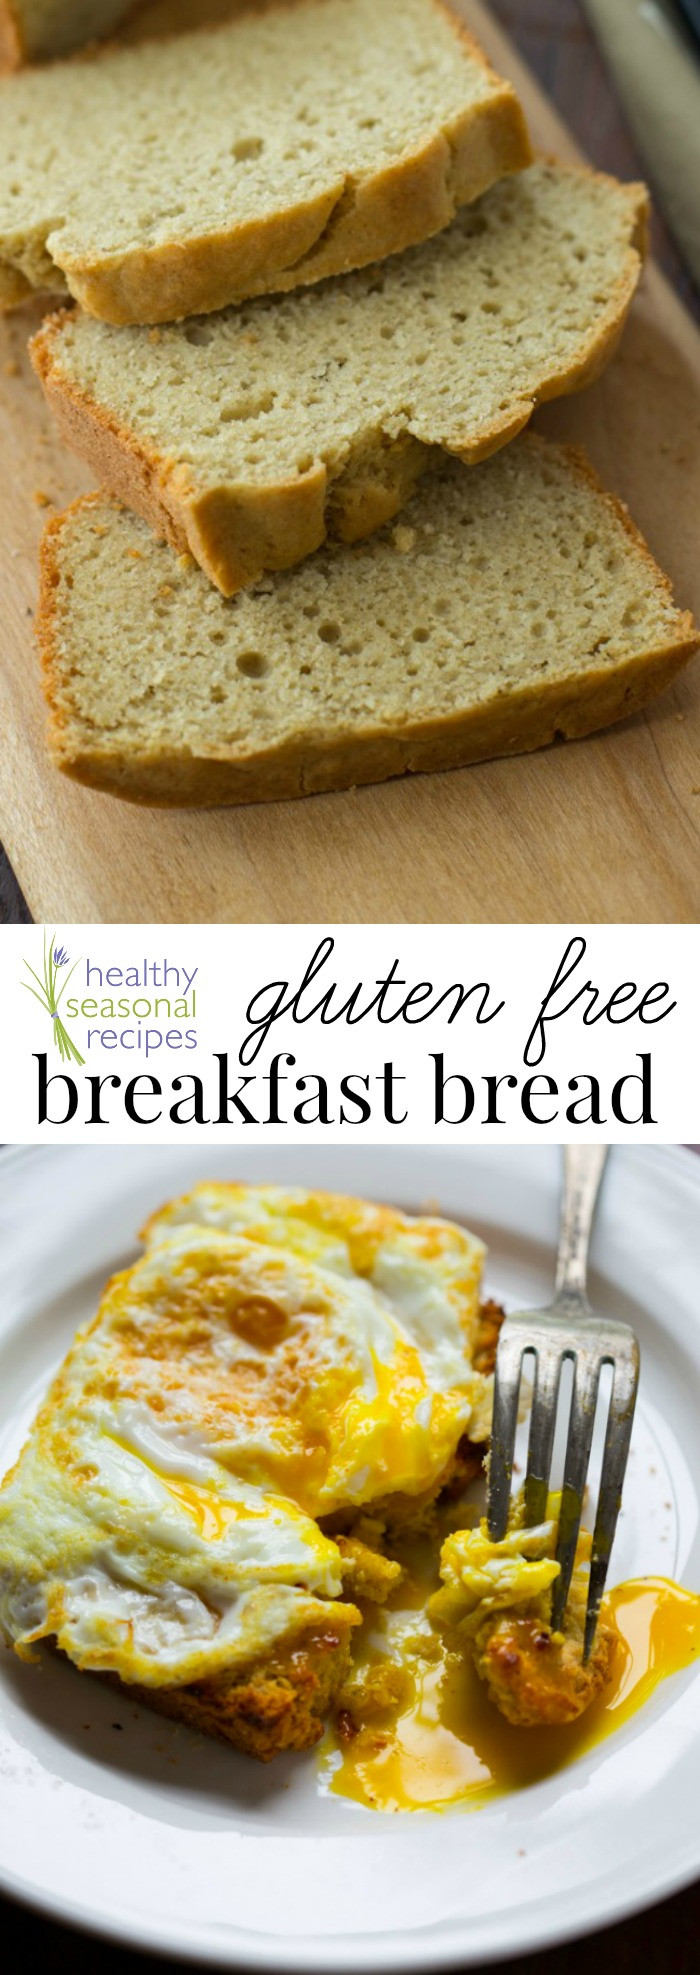 Gluten Free Healthy Recipes  gluten free breakfast bread Healthy Seasonal Recipes